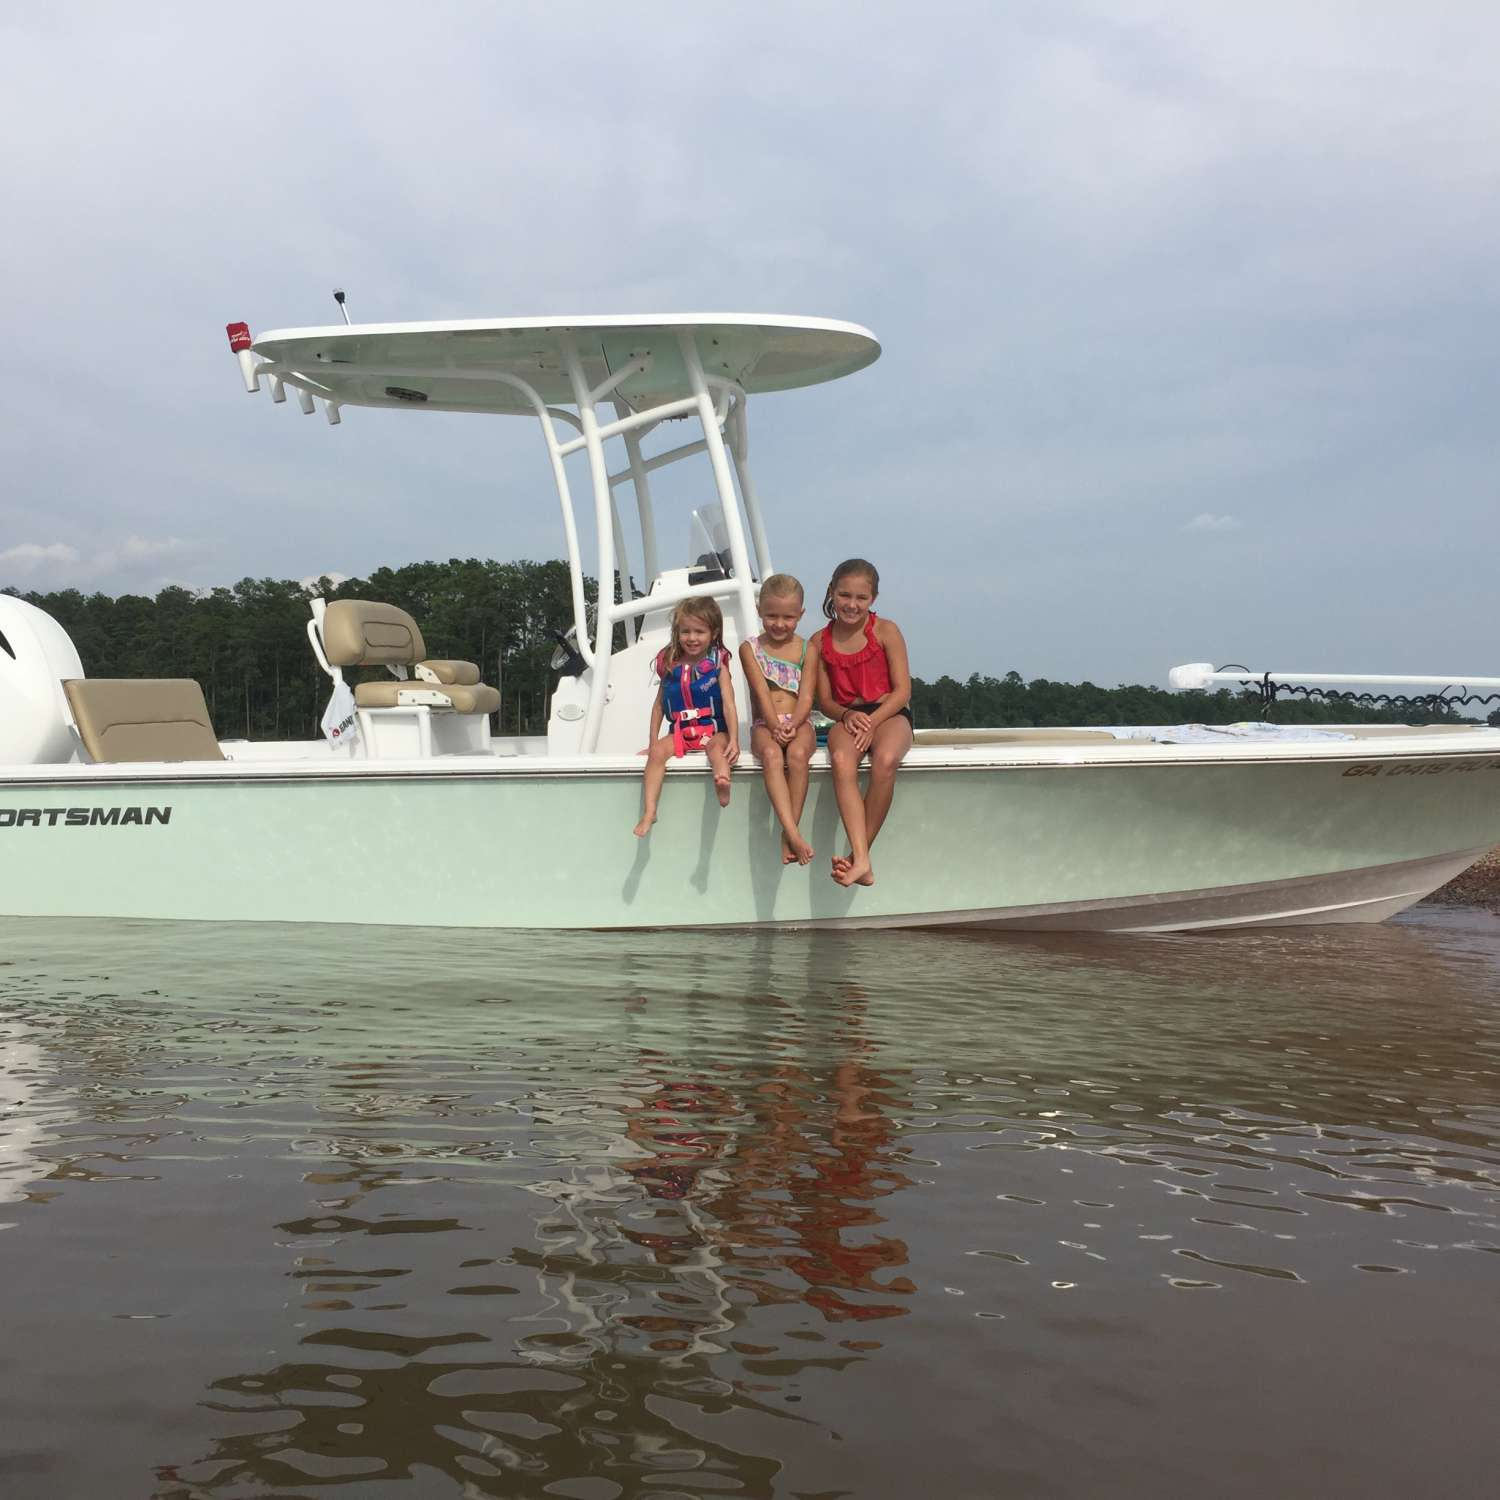 Title: Sunday Funday - On board their Sportsman Masters 227 Bay Boat - Location: Martinez, Georgia. Participating in the Photo Contest #SportsmanJune2017